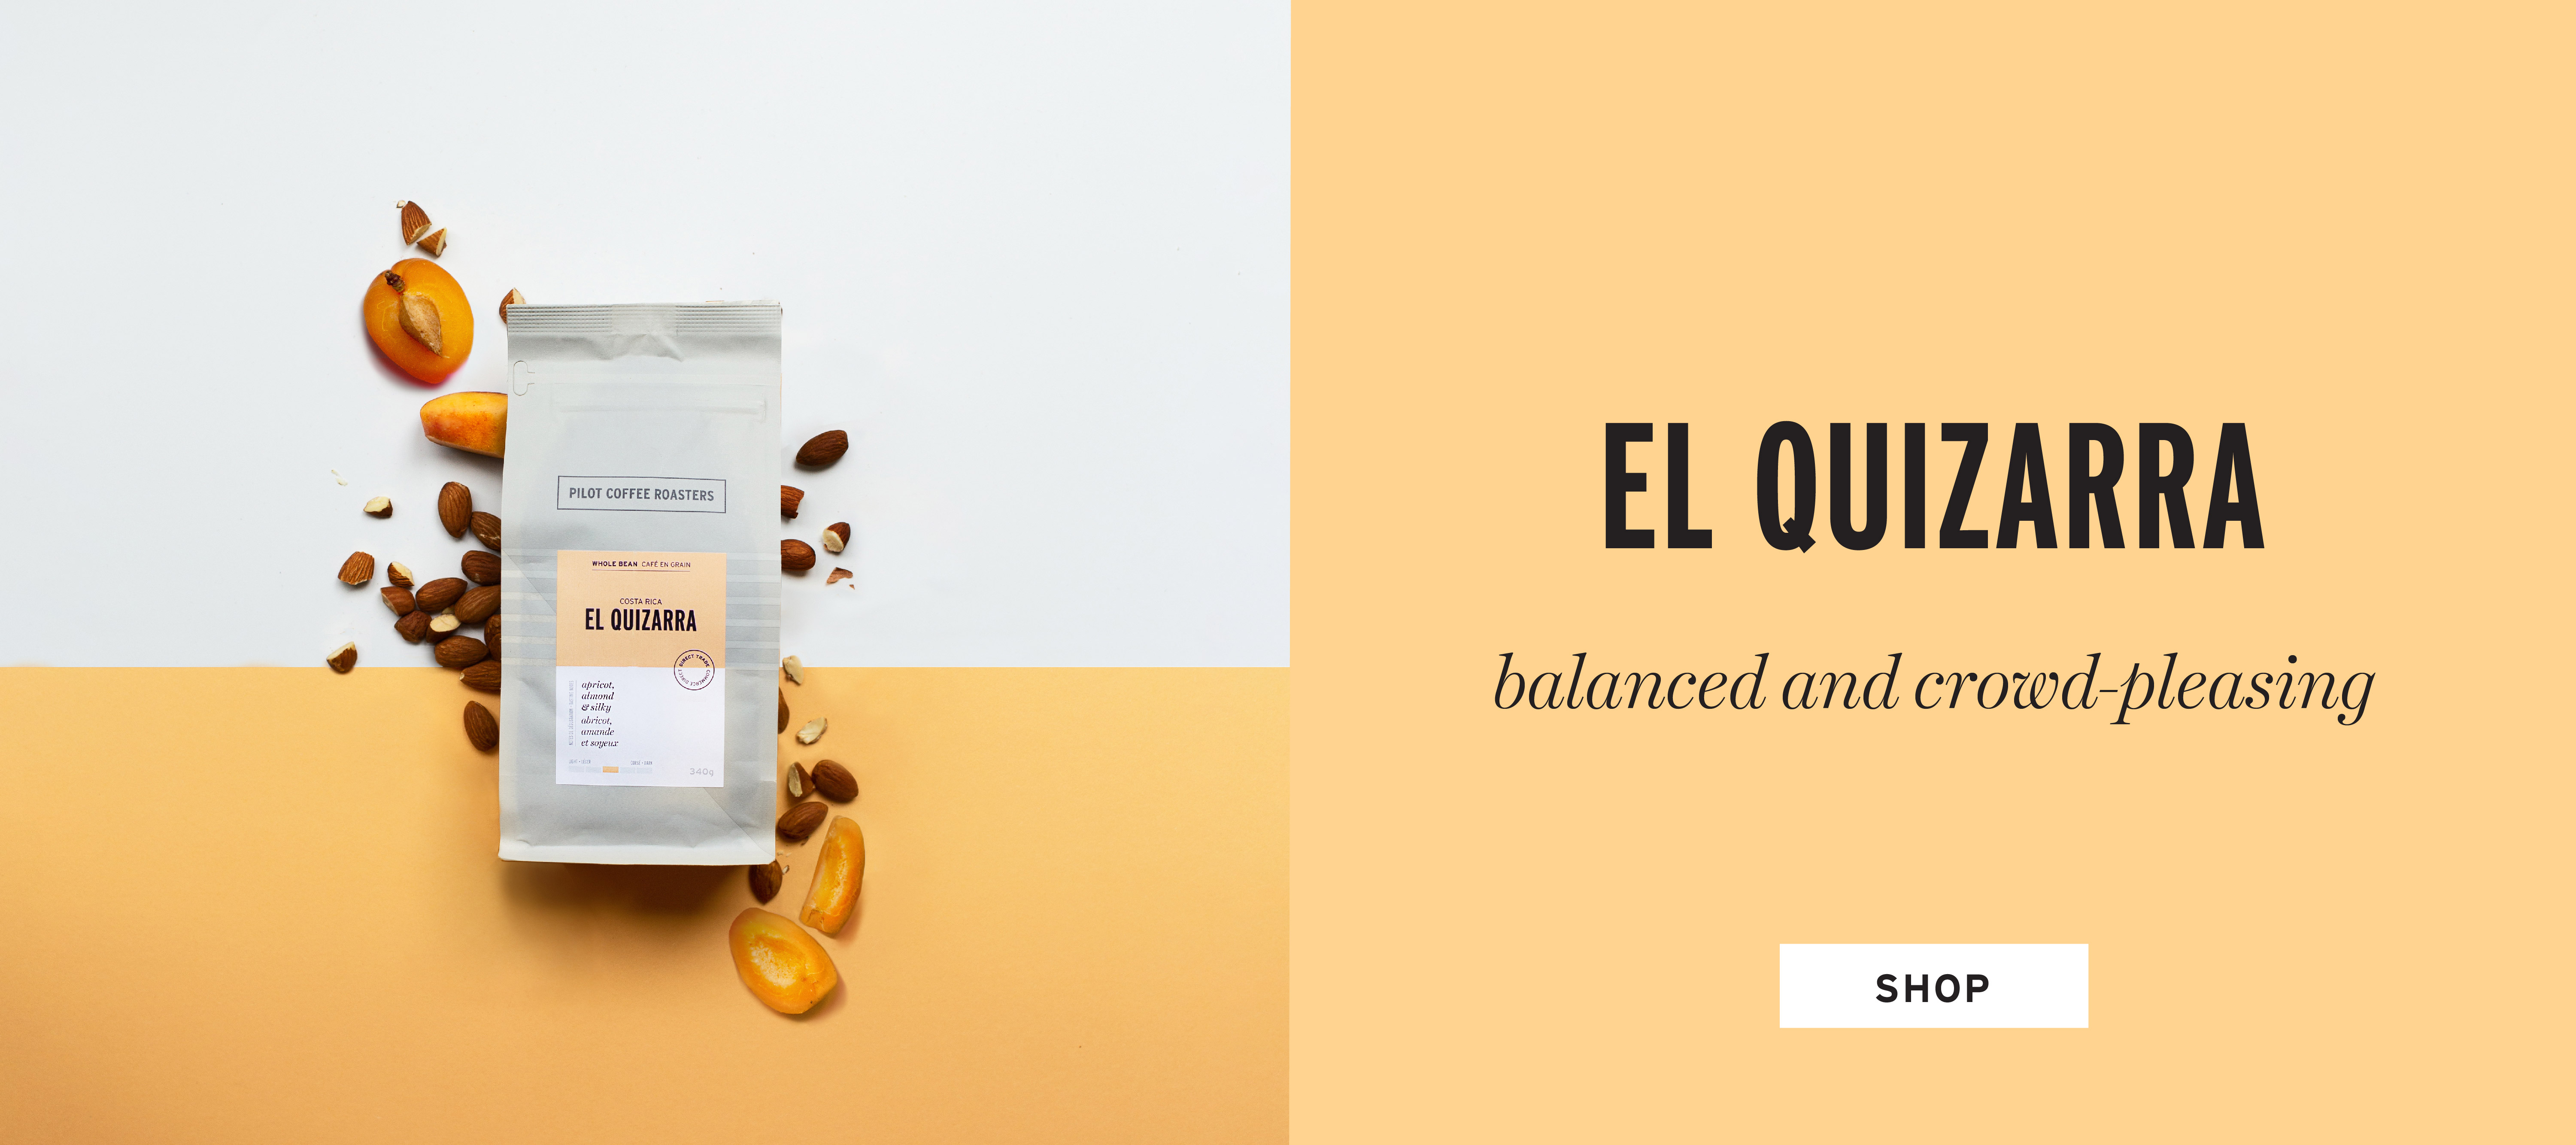 El Quizarra from Costa Rica. A sustainably grown single origin coffee that is honey processed resulting in a balanced and crowd-pleasing cup. Shop Now